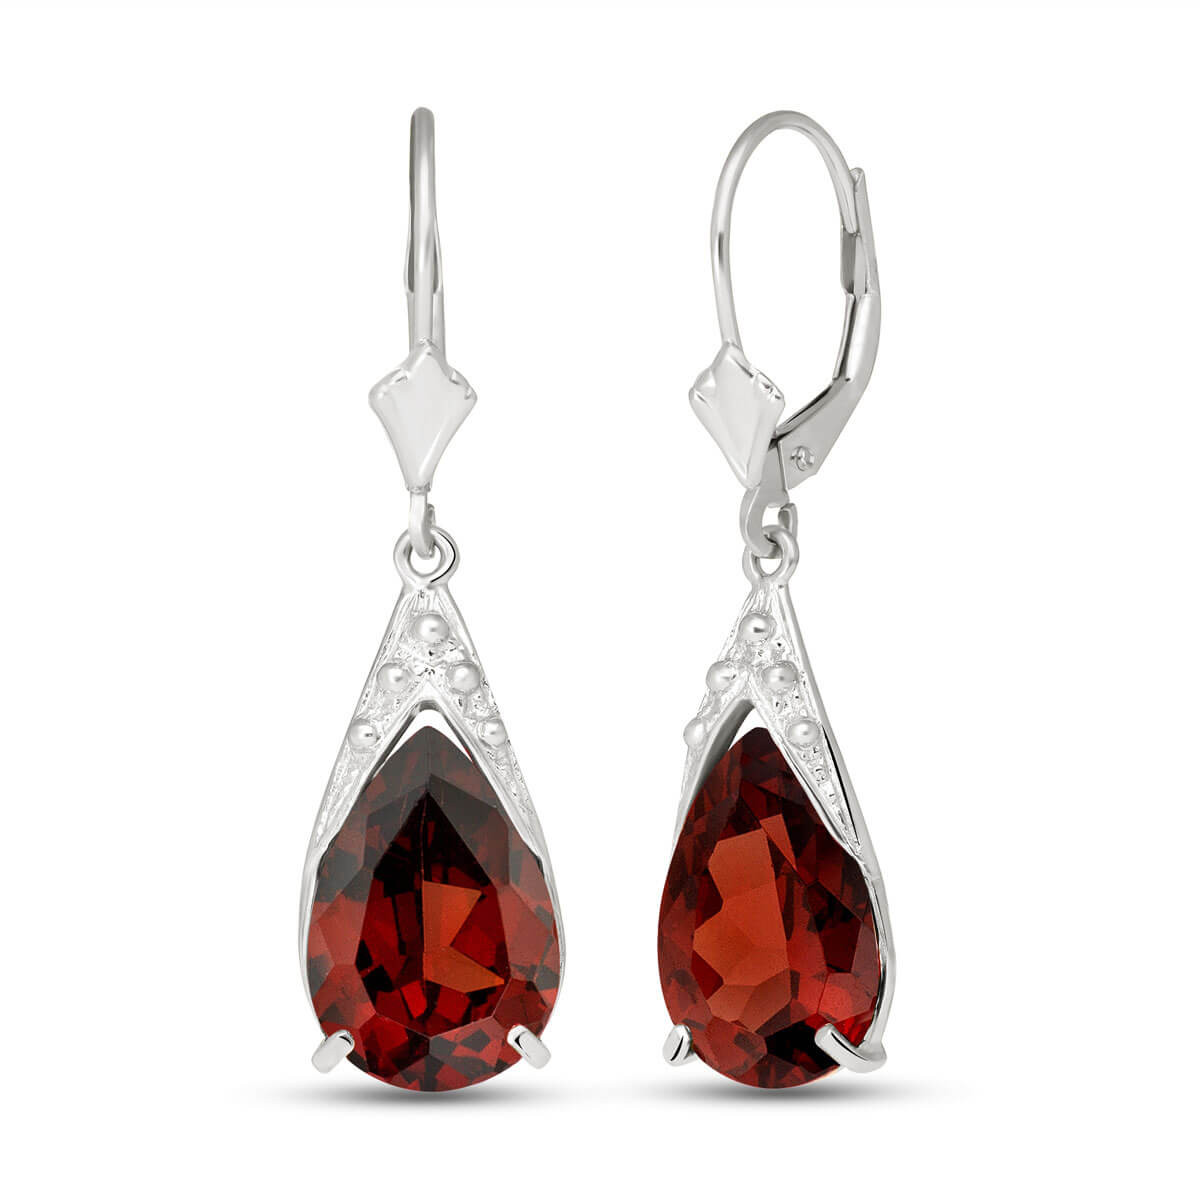 Garnet Snowcap Drop Earrings 10 ctw in 9ct White Gold